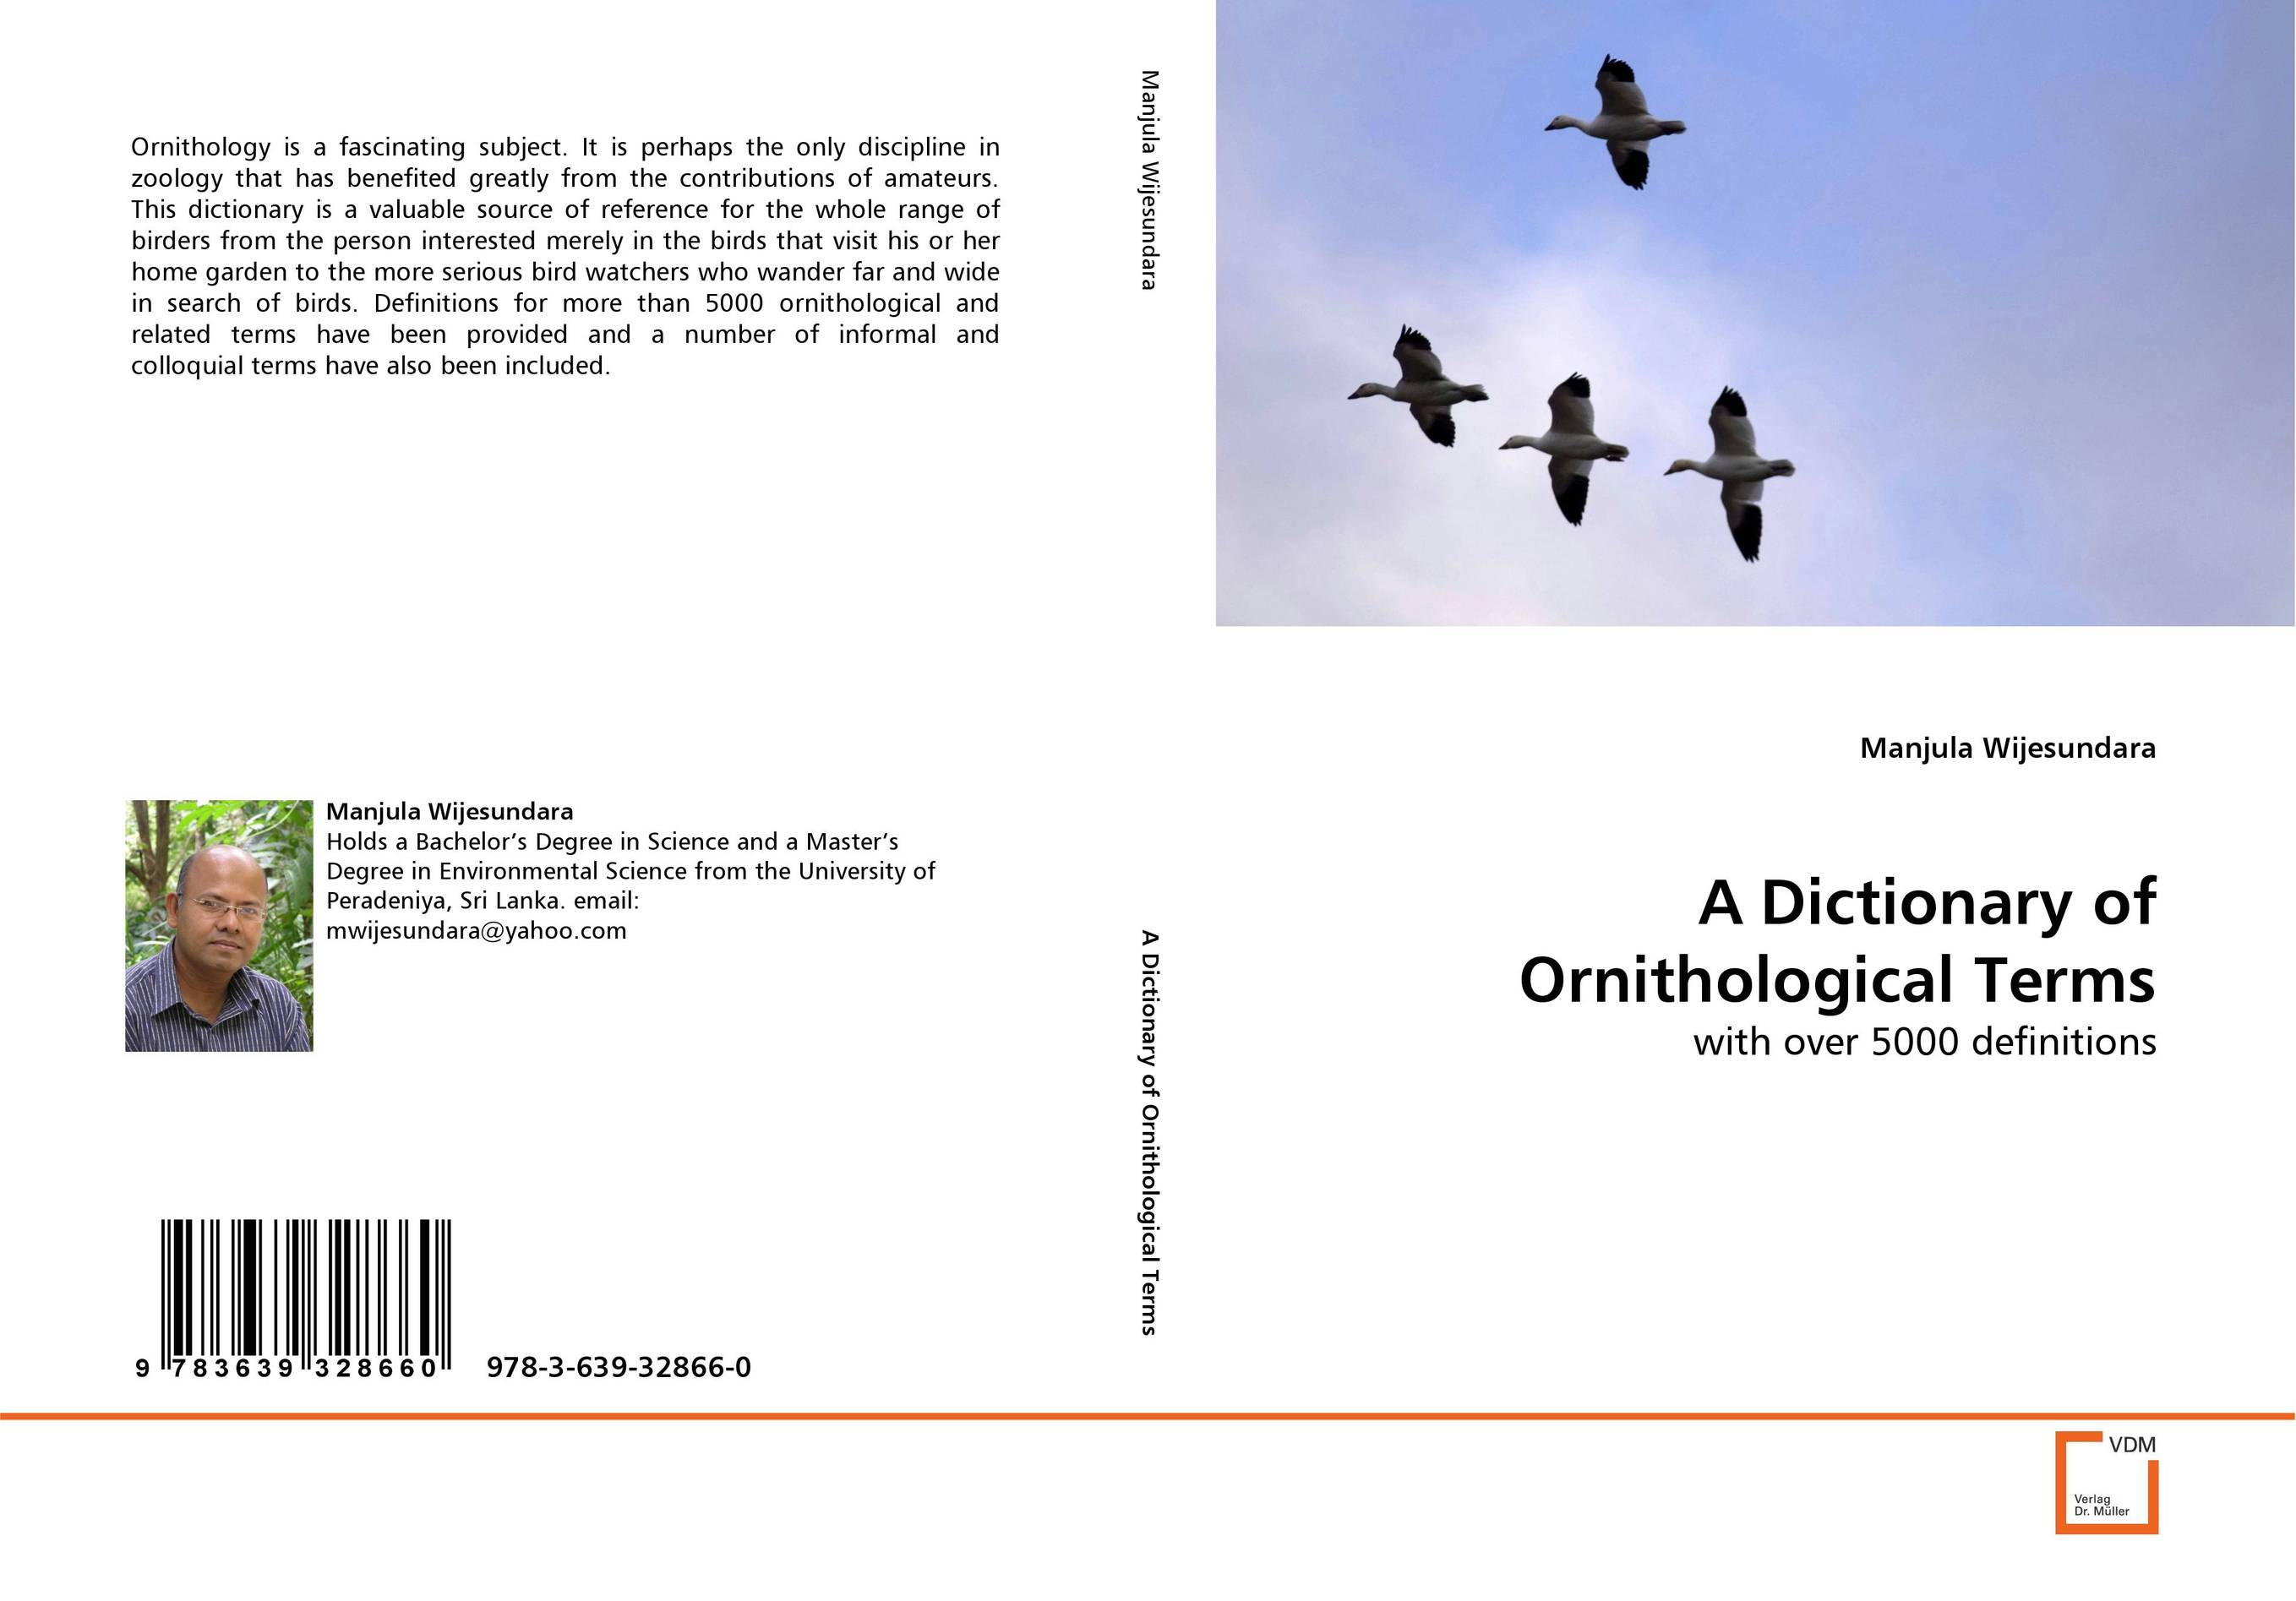 A Dictionary of Ornithological Terms a dictionary of ornithological terms